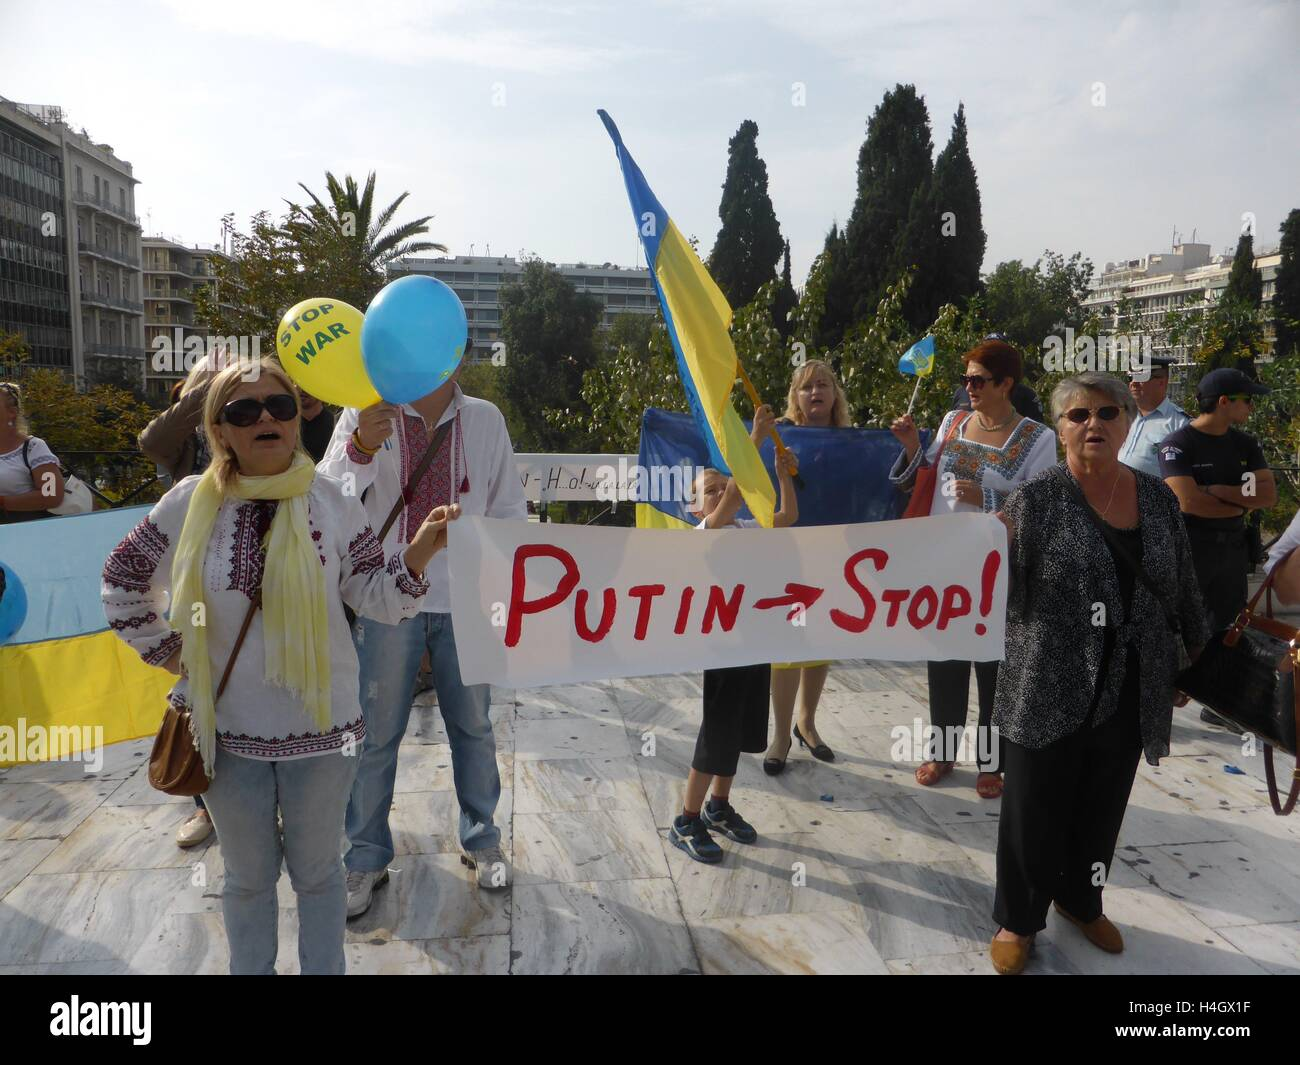 Athens, Greece. 16th Oct, 2016. Demonstrators hold a banner against Puttin. Ukranian people demonstrate in Athens - Stock Image